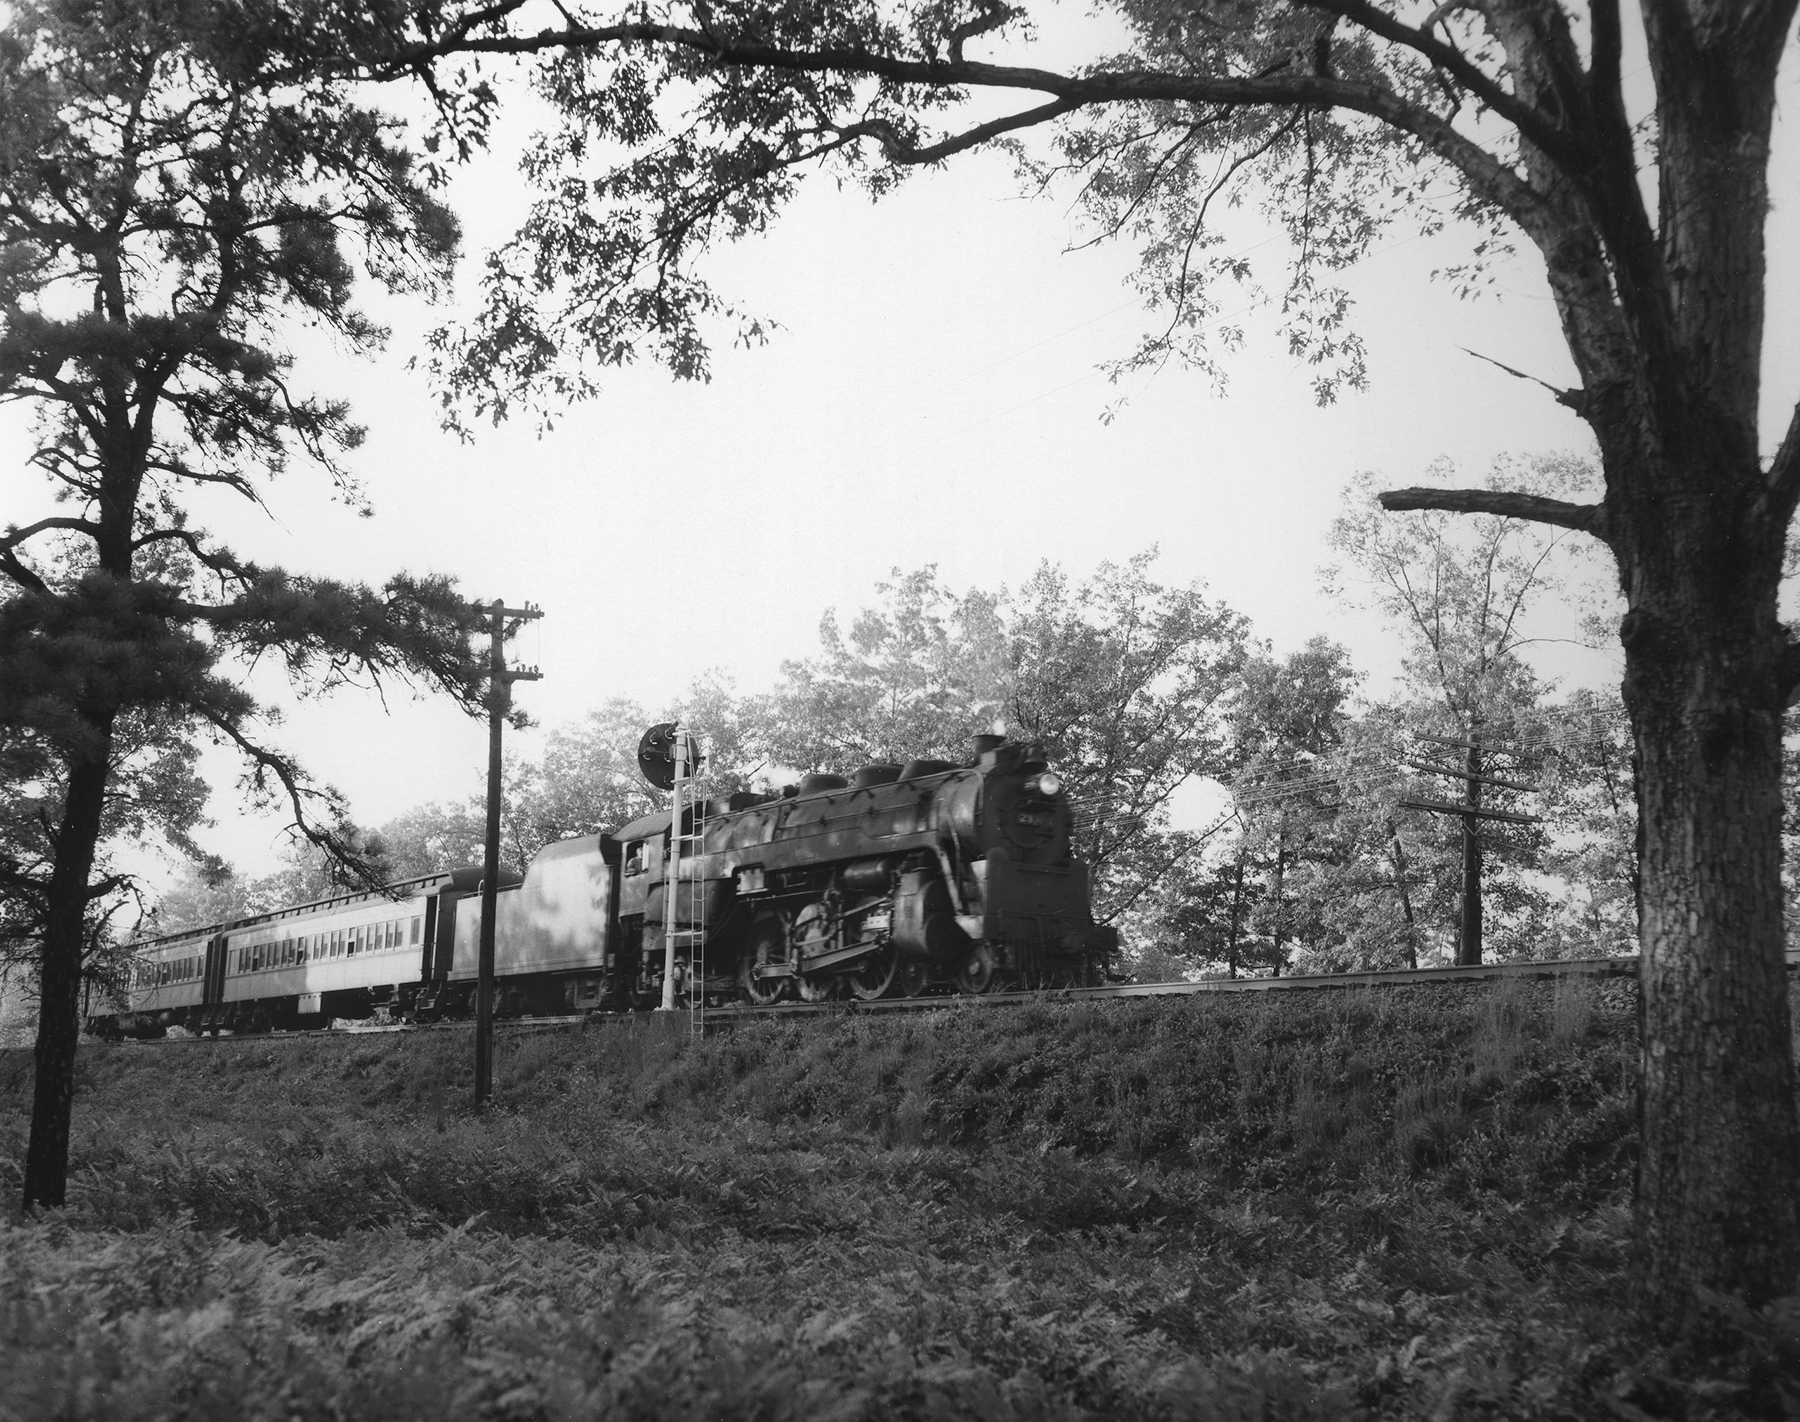 A PRSL local train powered by a Reading G class pacific locomotive heads south through Lucaston, New Jersey in the afternoon of September 3rd,1954. Like the PRR the Reading provided motive power much of which consisted of various G class Pacificsthat were built in the company shops in Reading, Pennsylvania.Photography by Robert L. Long, Collection of William Gindhart